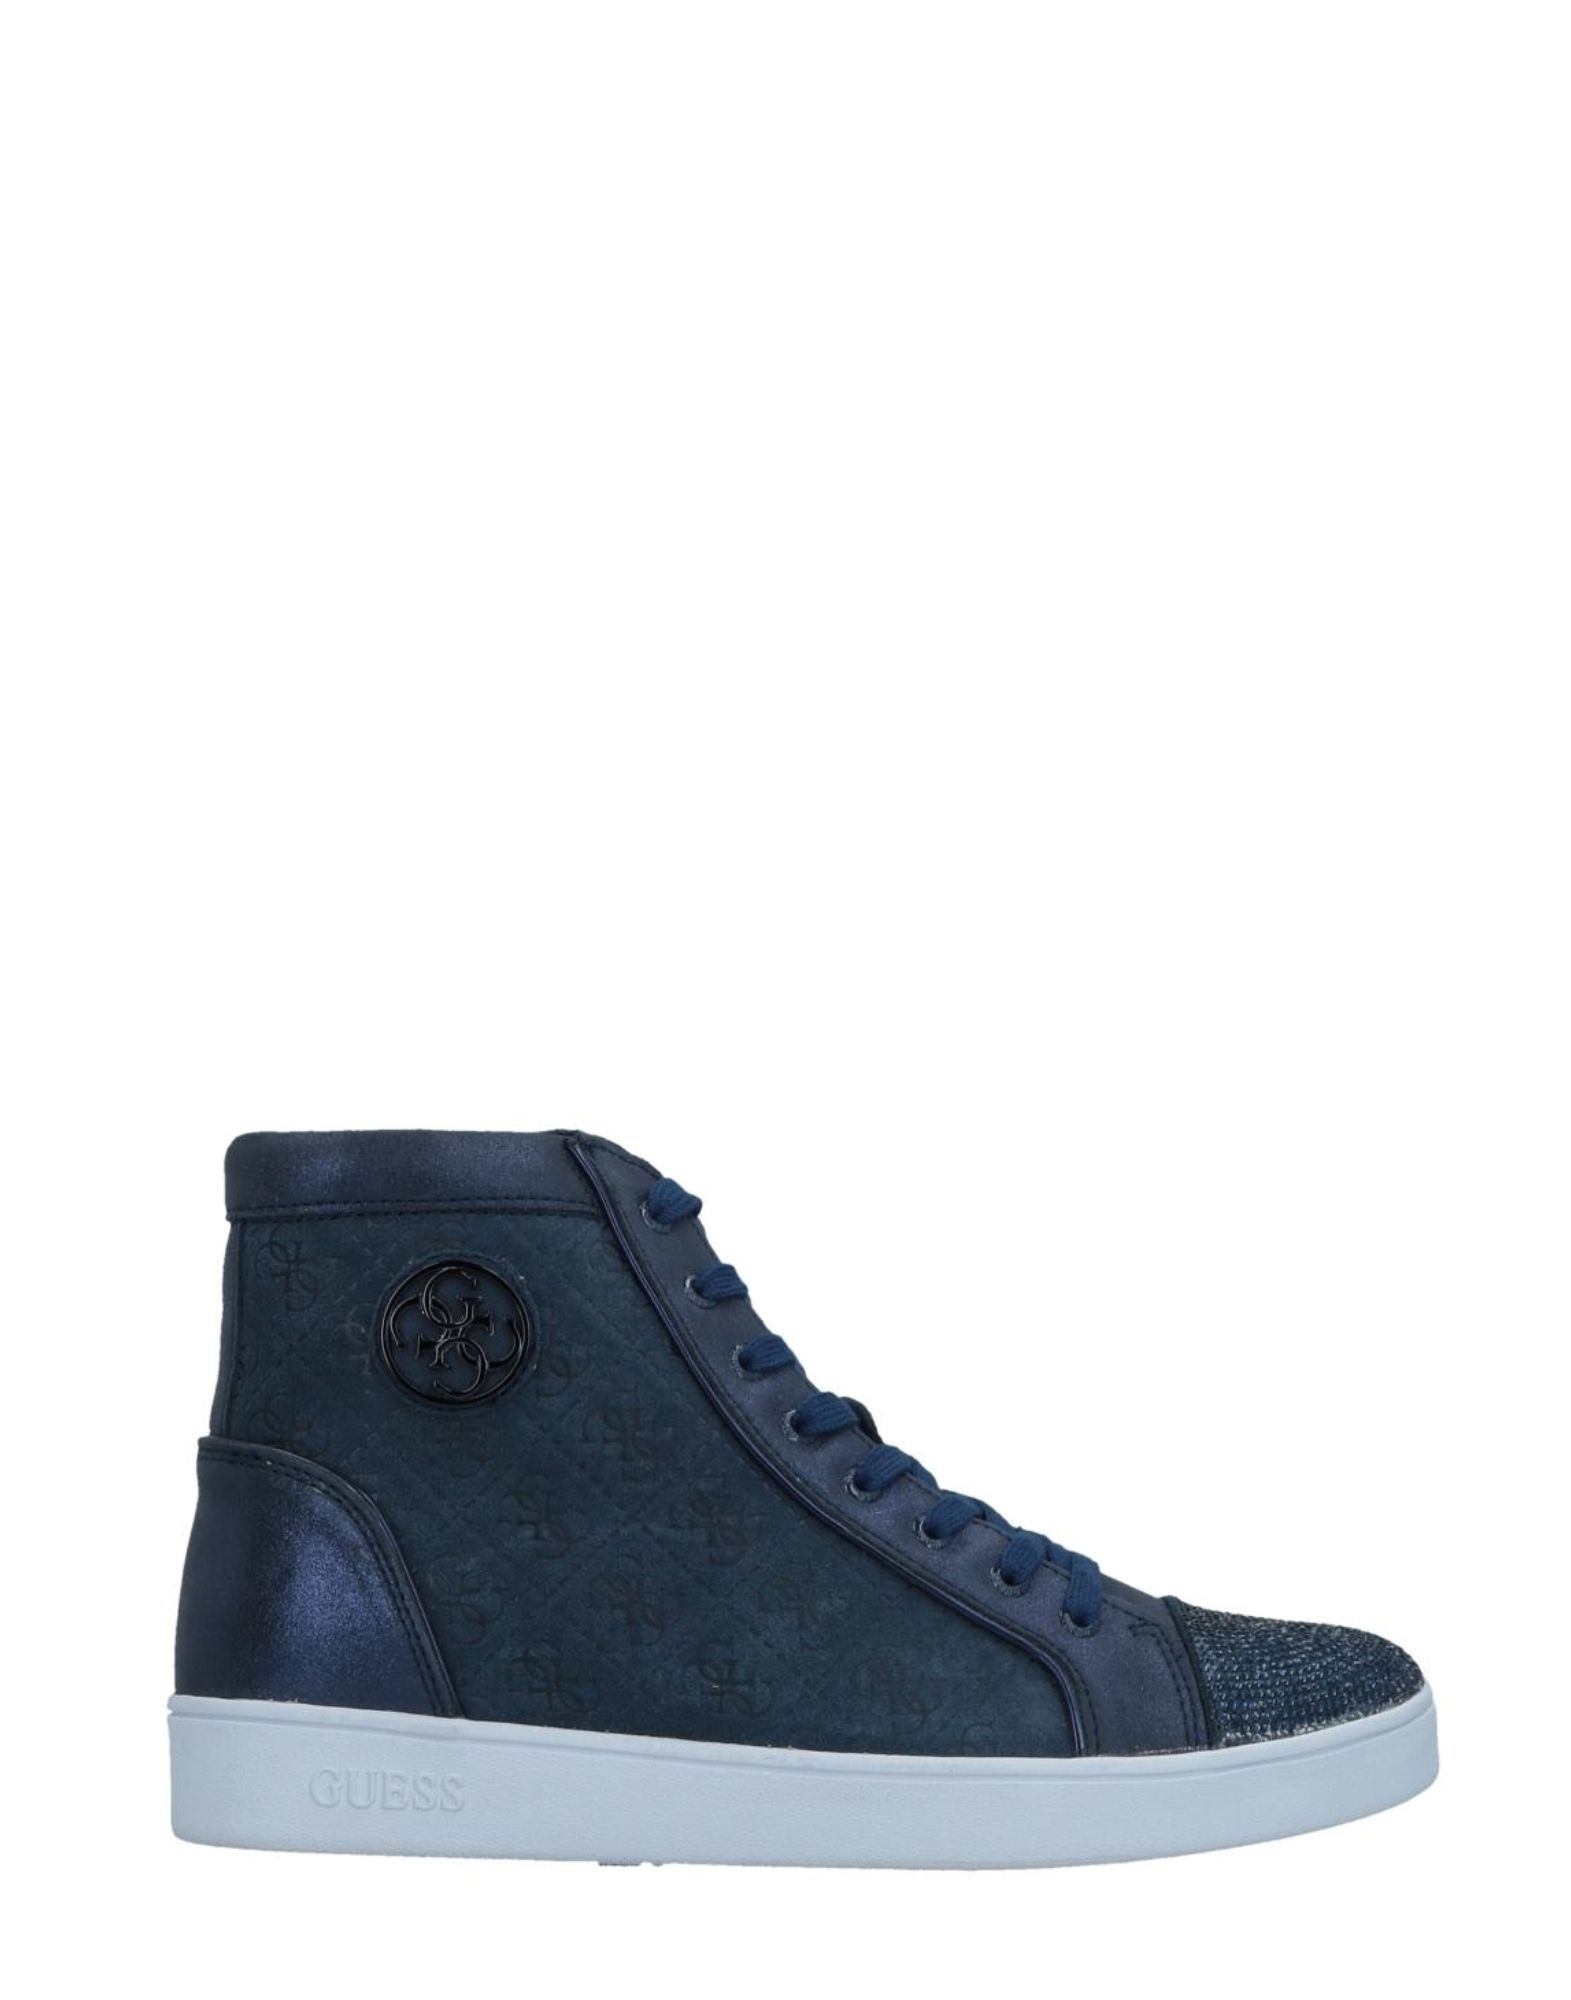 Sneakers Guess Donna - 11251684OQ elegante